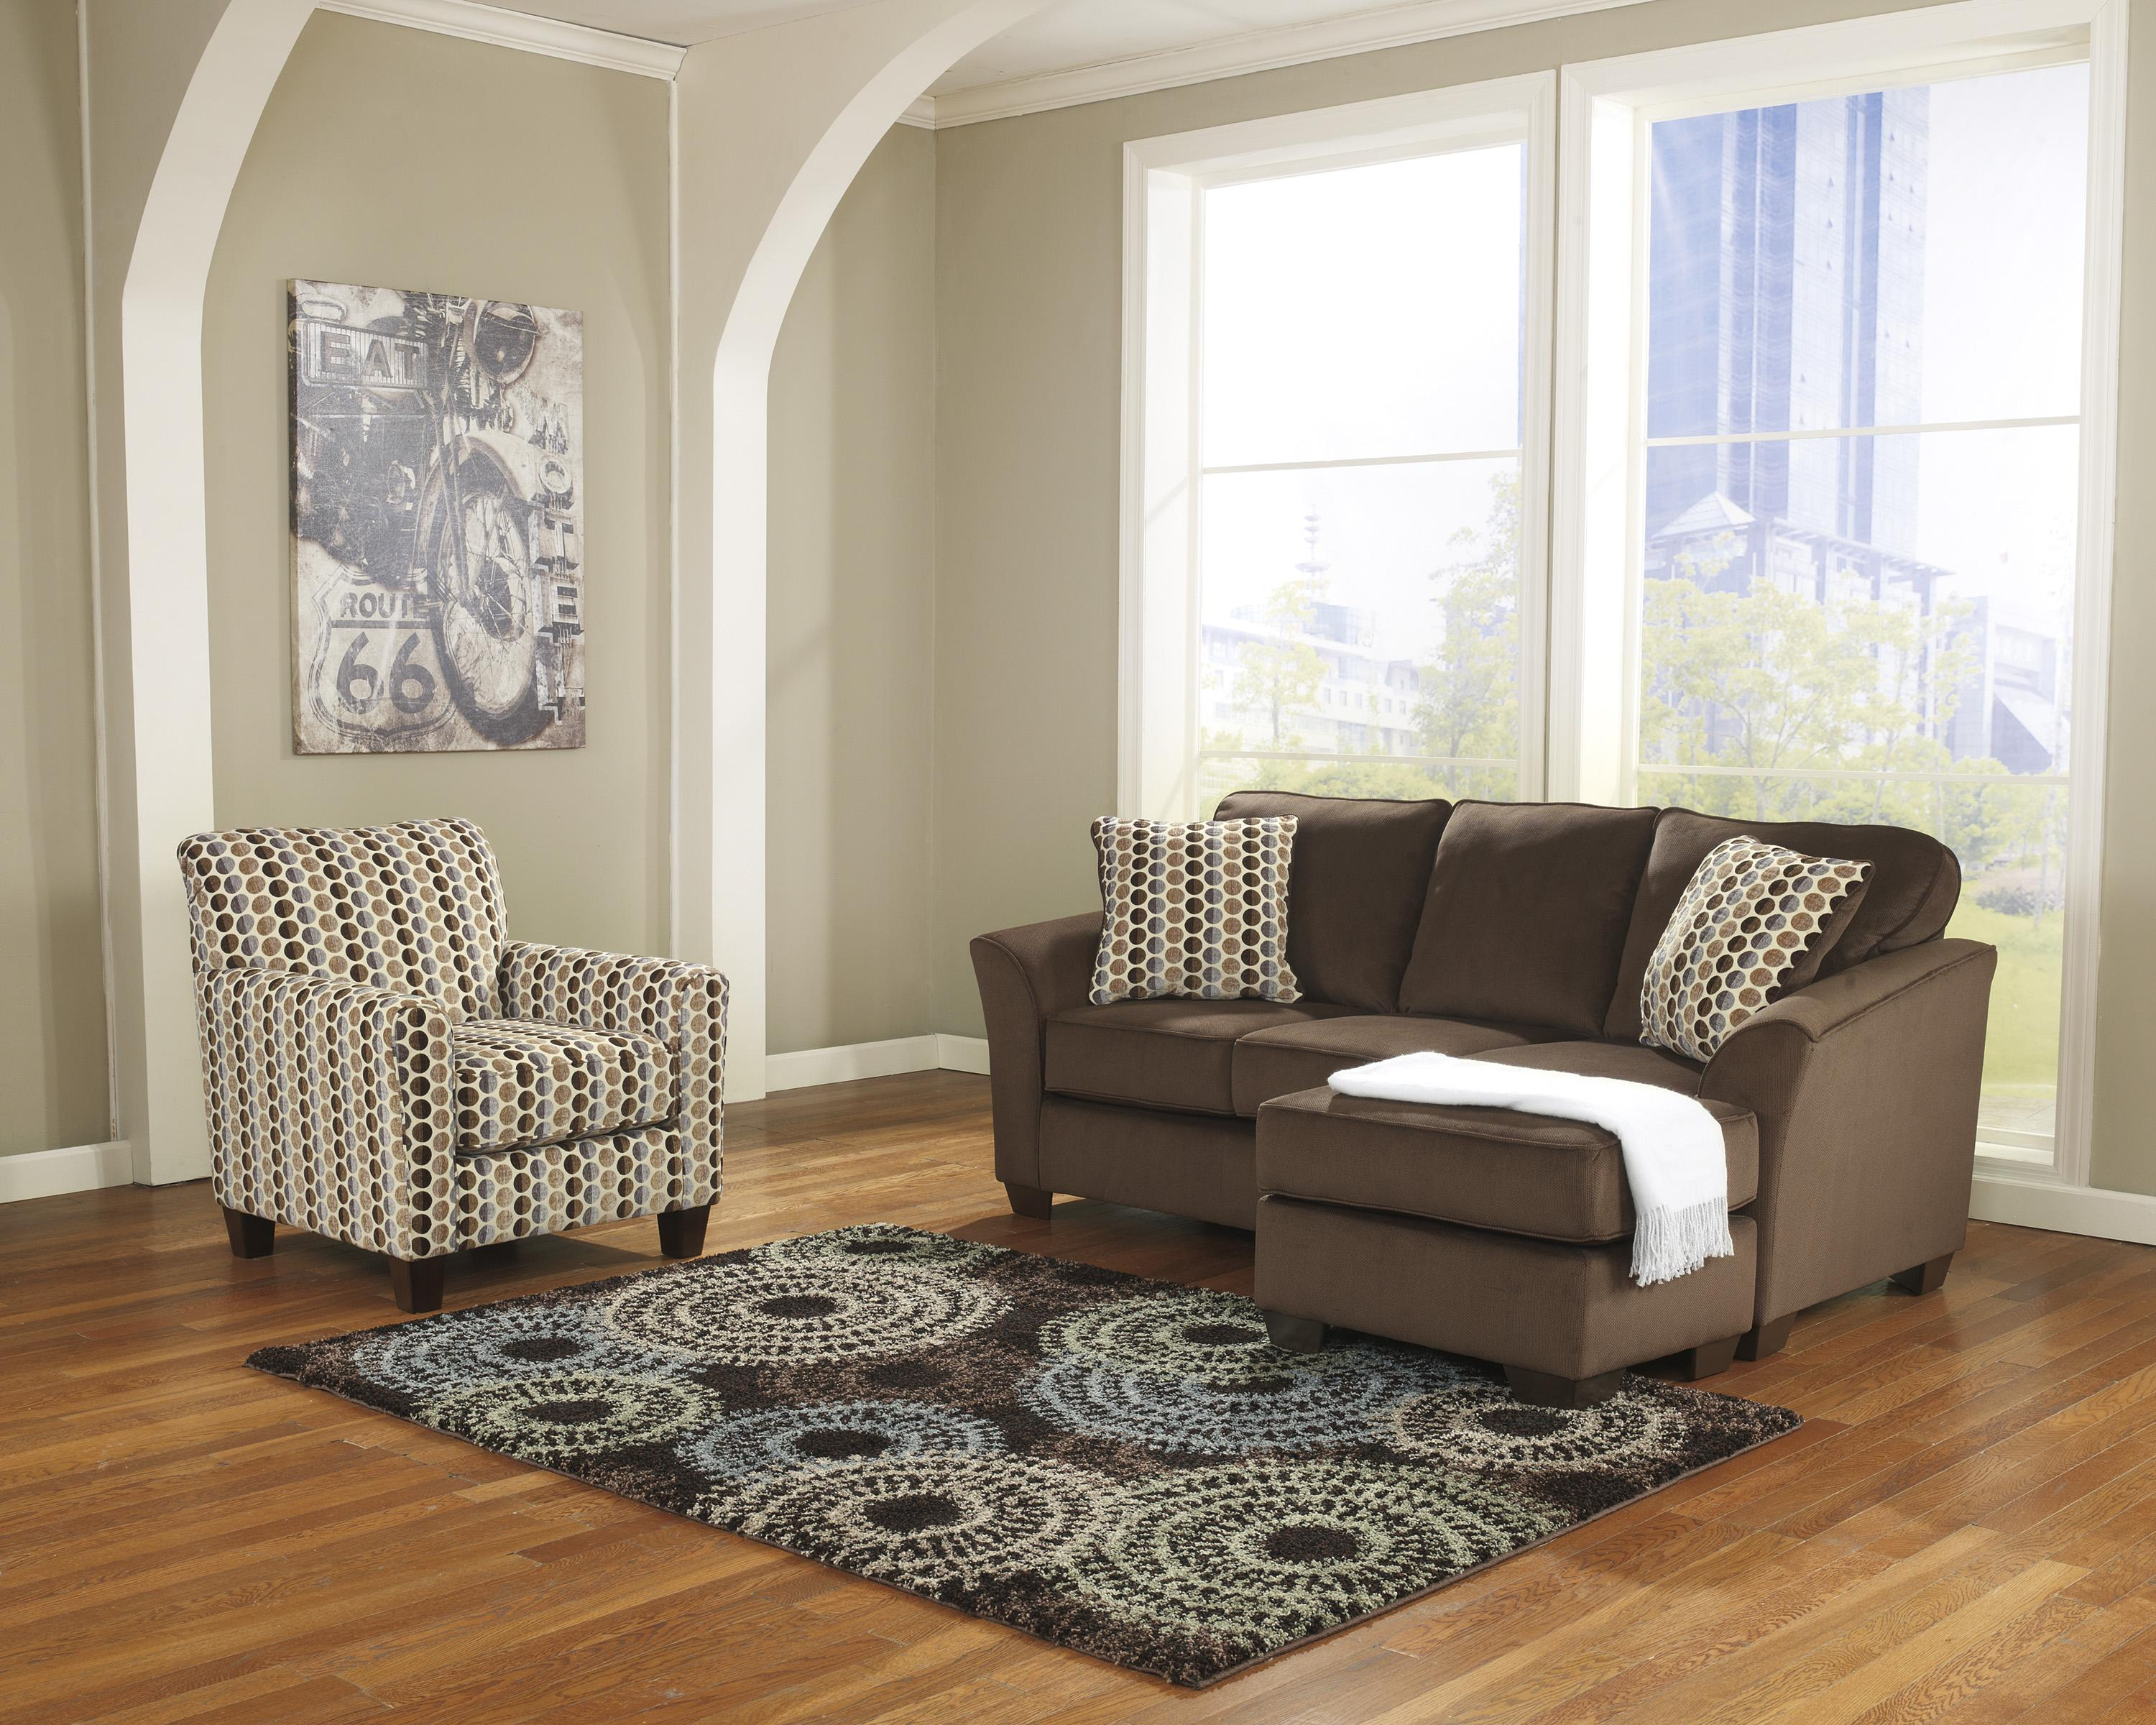 Ashley furniture geordie cafe contemporary sofa chaise for Ashley furniture chaise